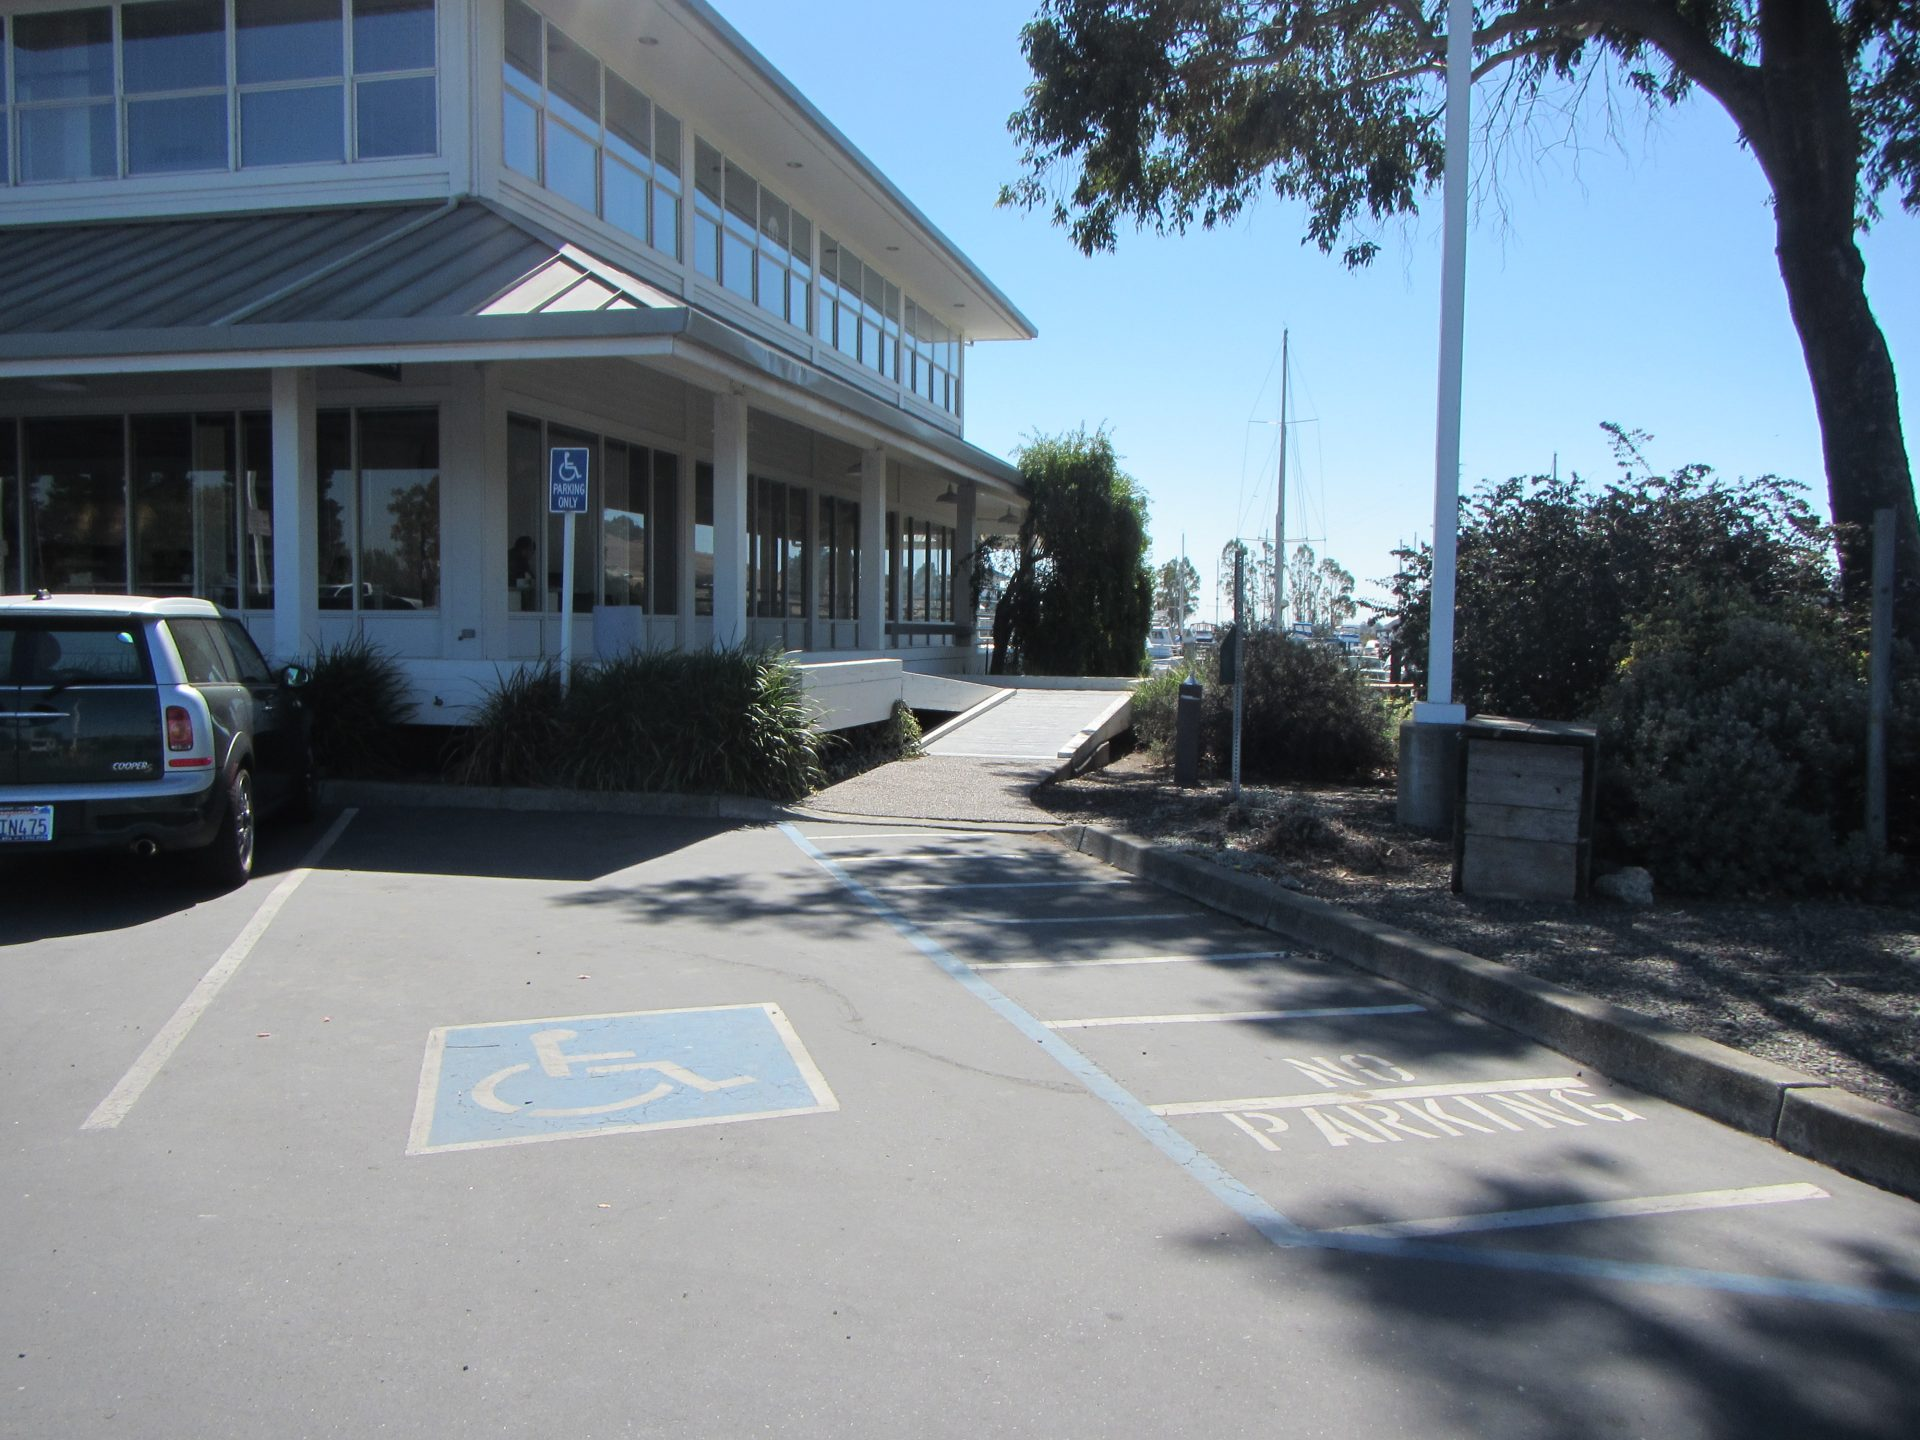 Handicap accessible space with building beyond